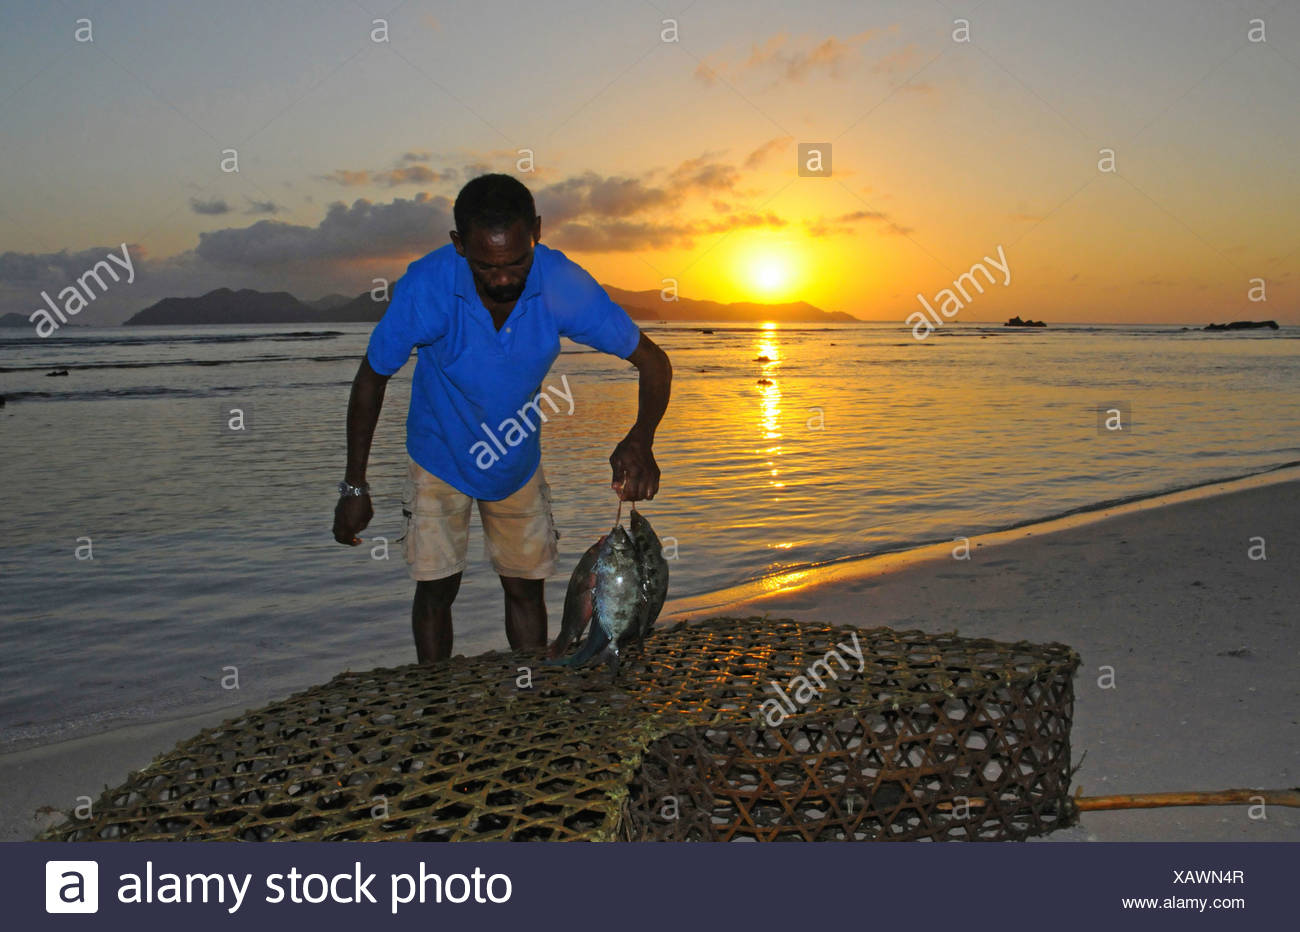 Fisherman carrying fish in front of a sunset, Anse Severe, La Digue, Seychelles - Stock Image